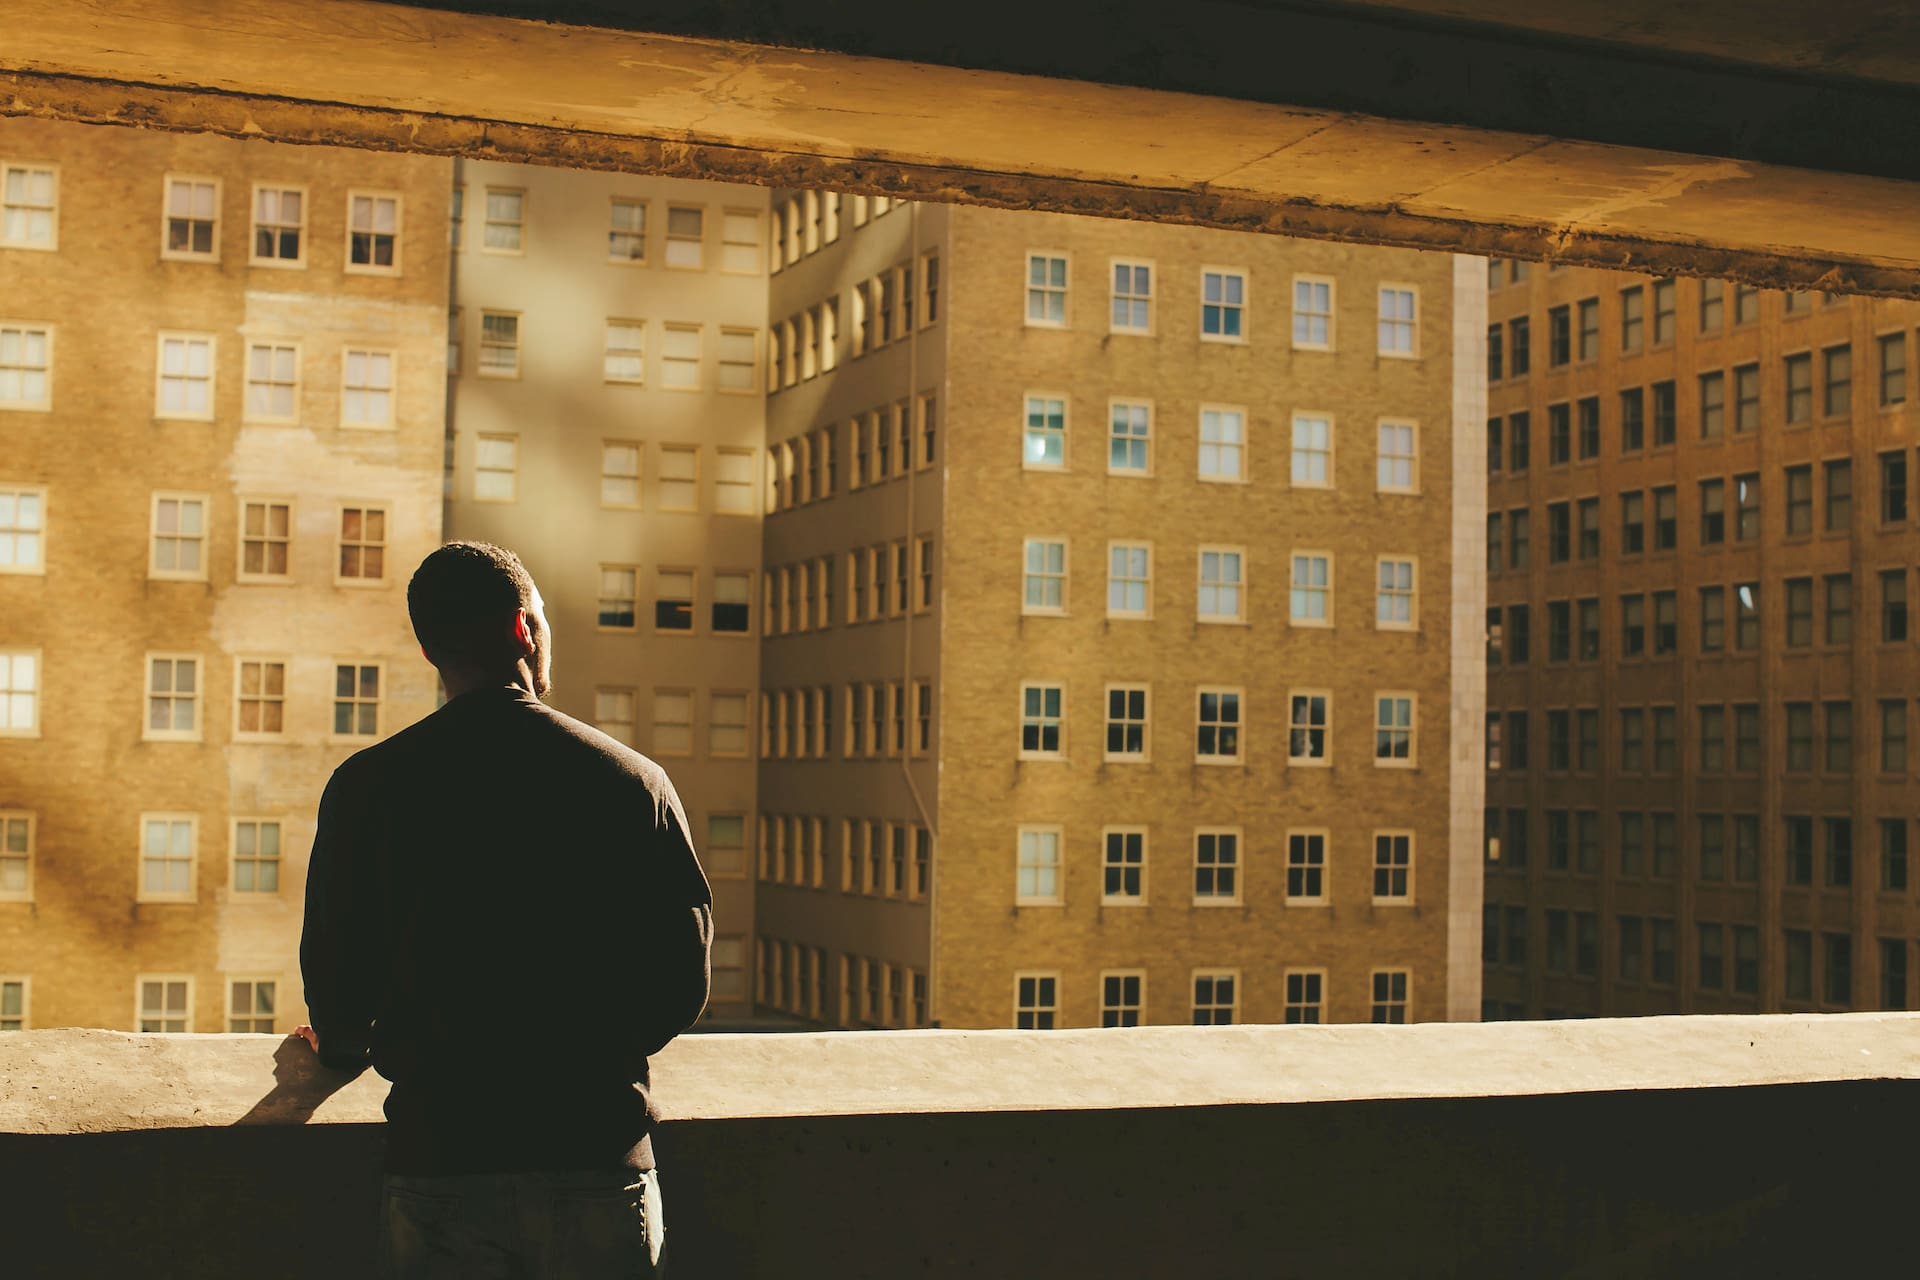 We stand behind a man on a concrete balcony as he looks into the sunlight on the buildings in the distance.